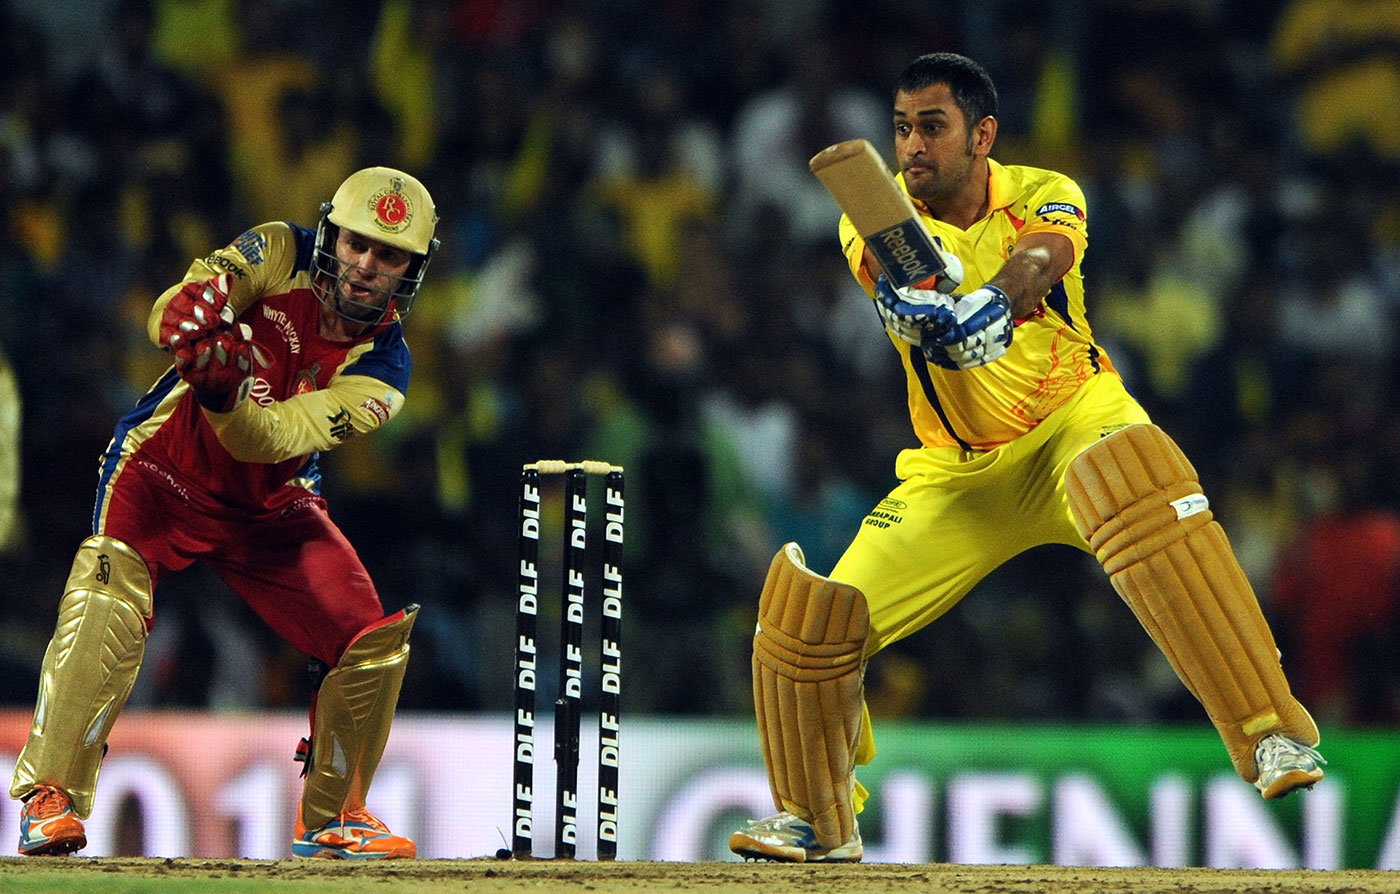 Thala before the storm: in 24 matches across ten IPL seasons, Dhoni has captained Chennai Super Kings to 16 wins against Royal Challengers Bangalore